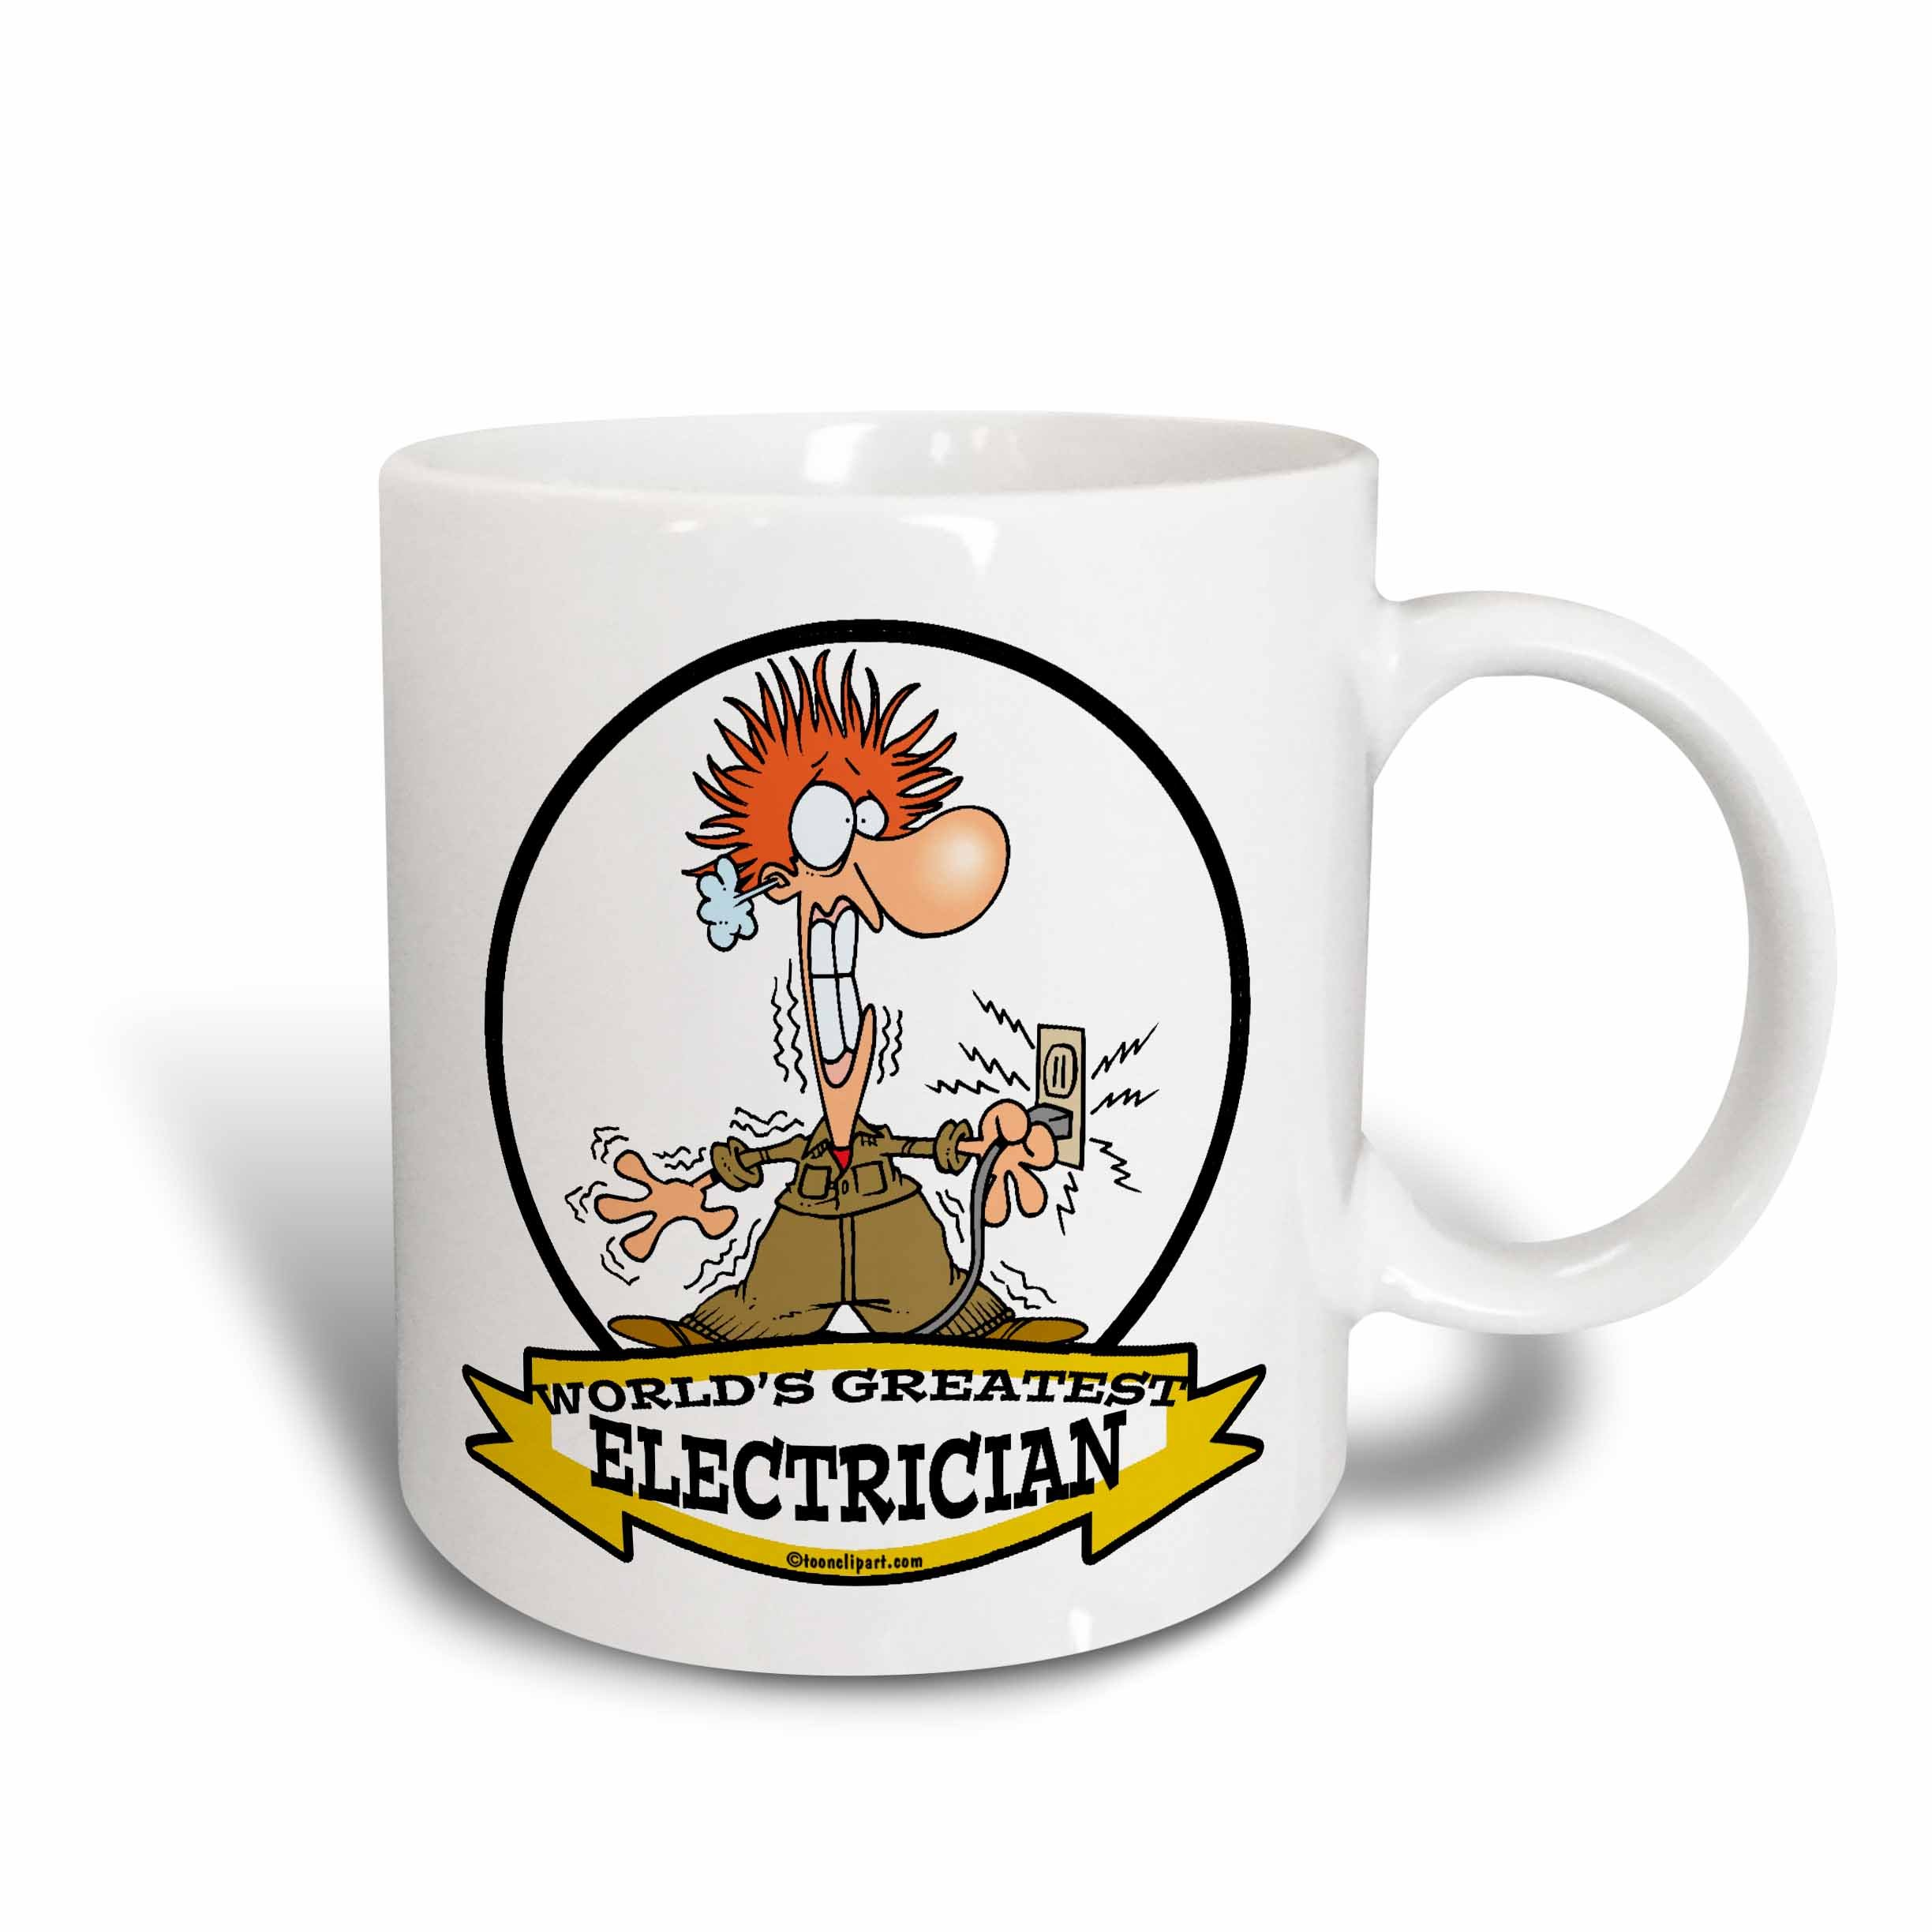 3dRose 103149_1 Funny Worlds Greatest Electrician Cartoon Ceramic Mug, 11 oz, White